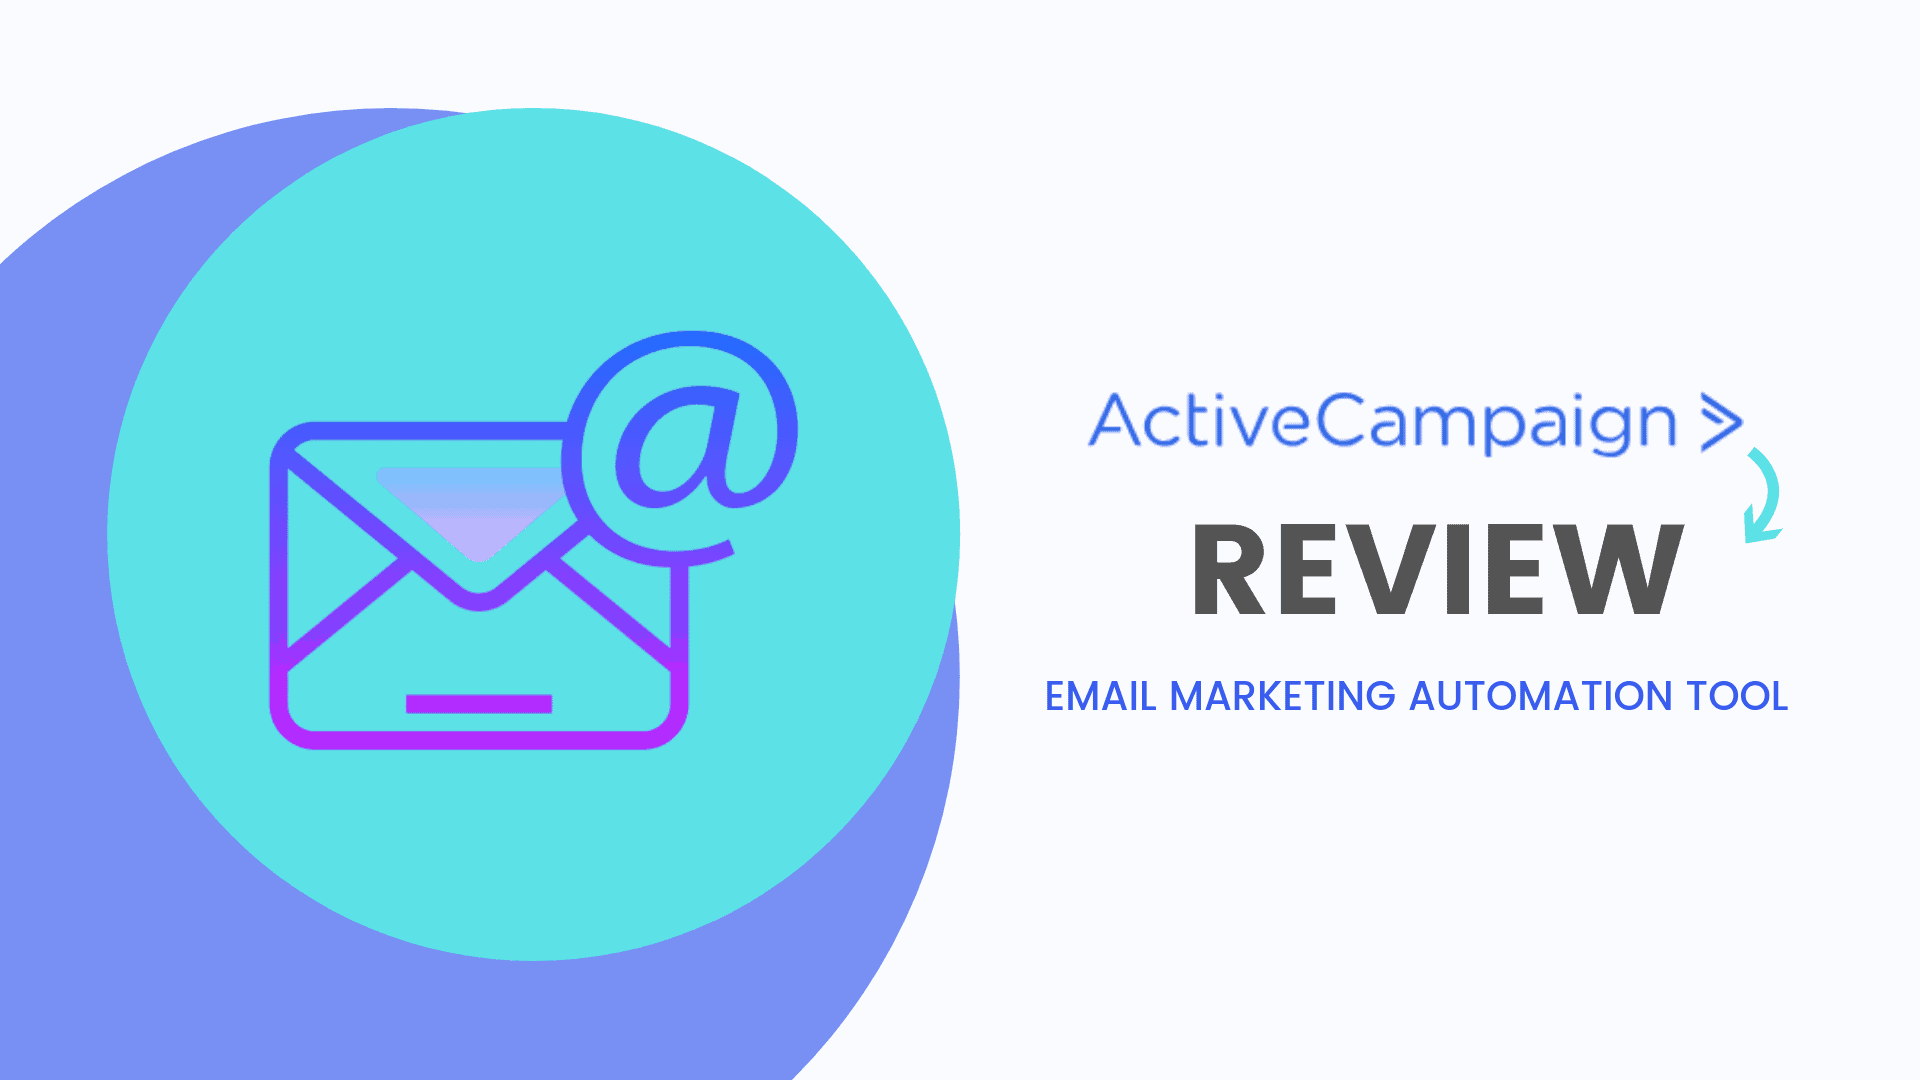 ActiveCampaign Review 2019